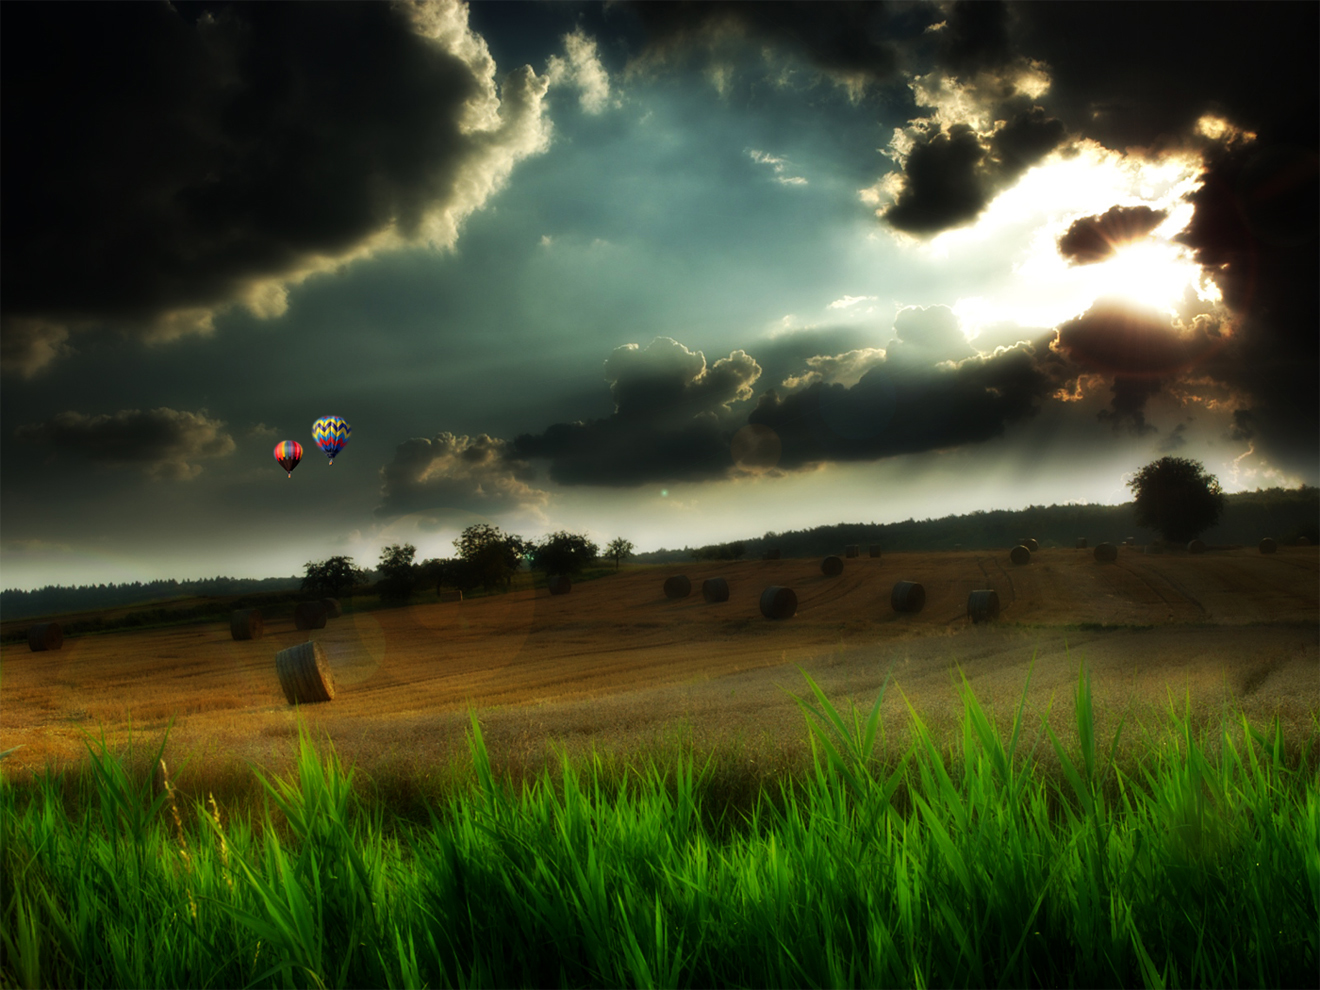 Nature Landscapes Wallpaper II By LisandroLee Nature Landscapes Wallpaper  II By LisandroLee